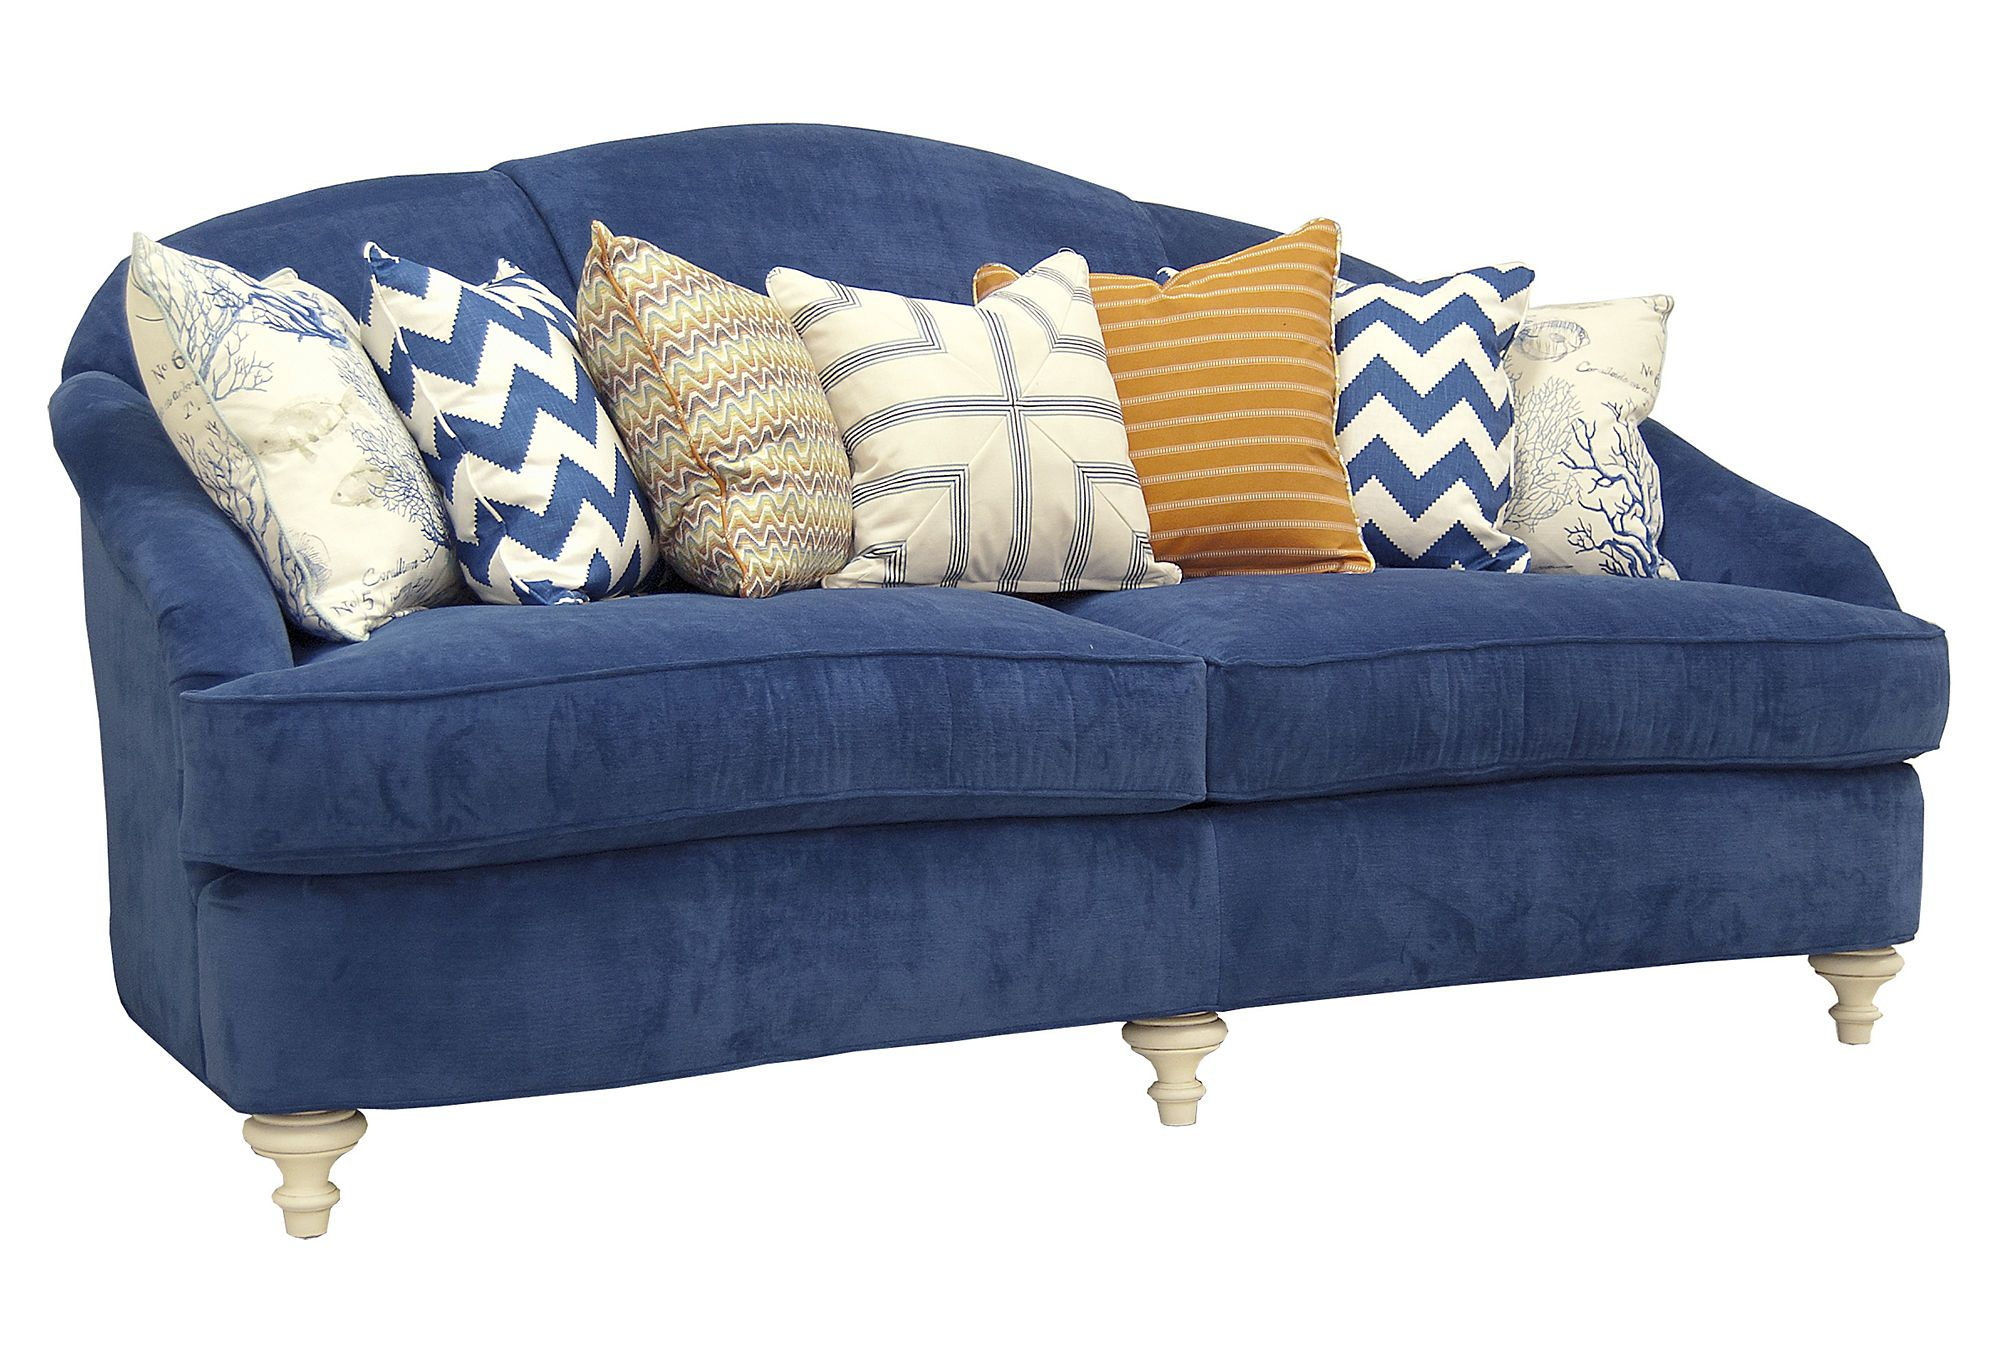 Navy Couch And Throw Pillows Decor Coastal Living Rooms Home Decor